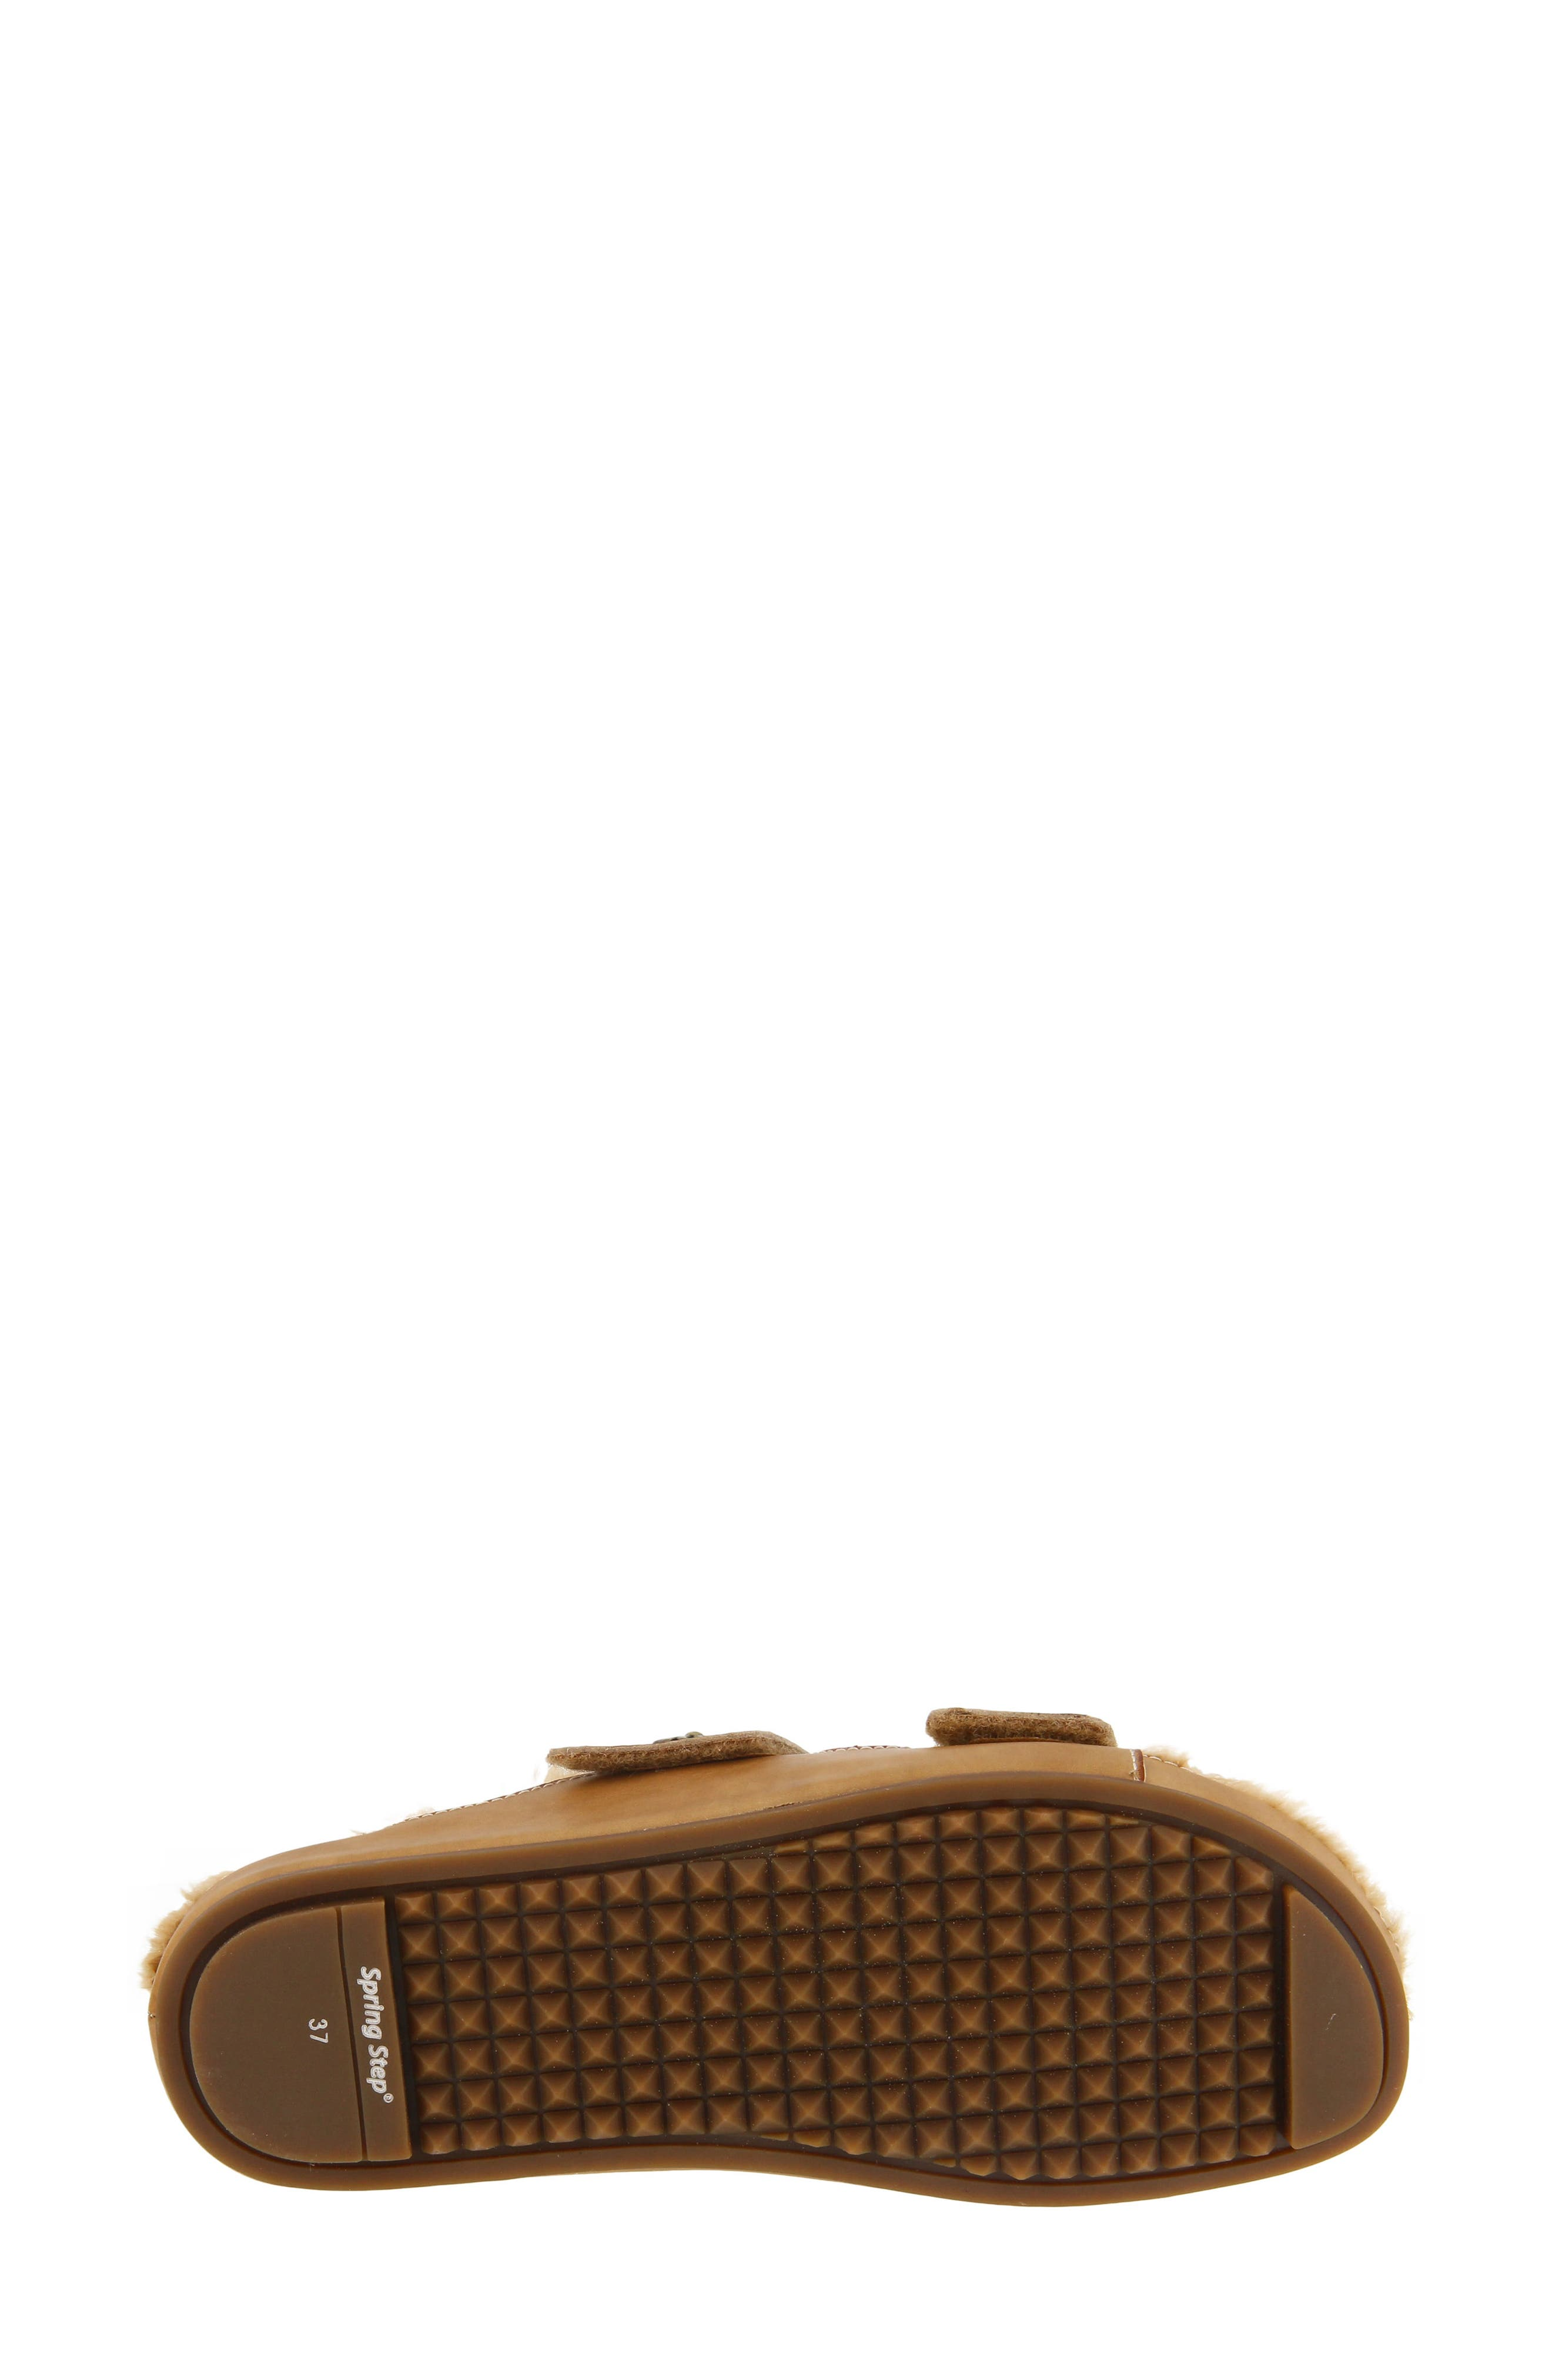 L'Artiste Furrie Sandal,                             Alternate thumbnail 6, color,                             Beige Leather